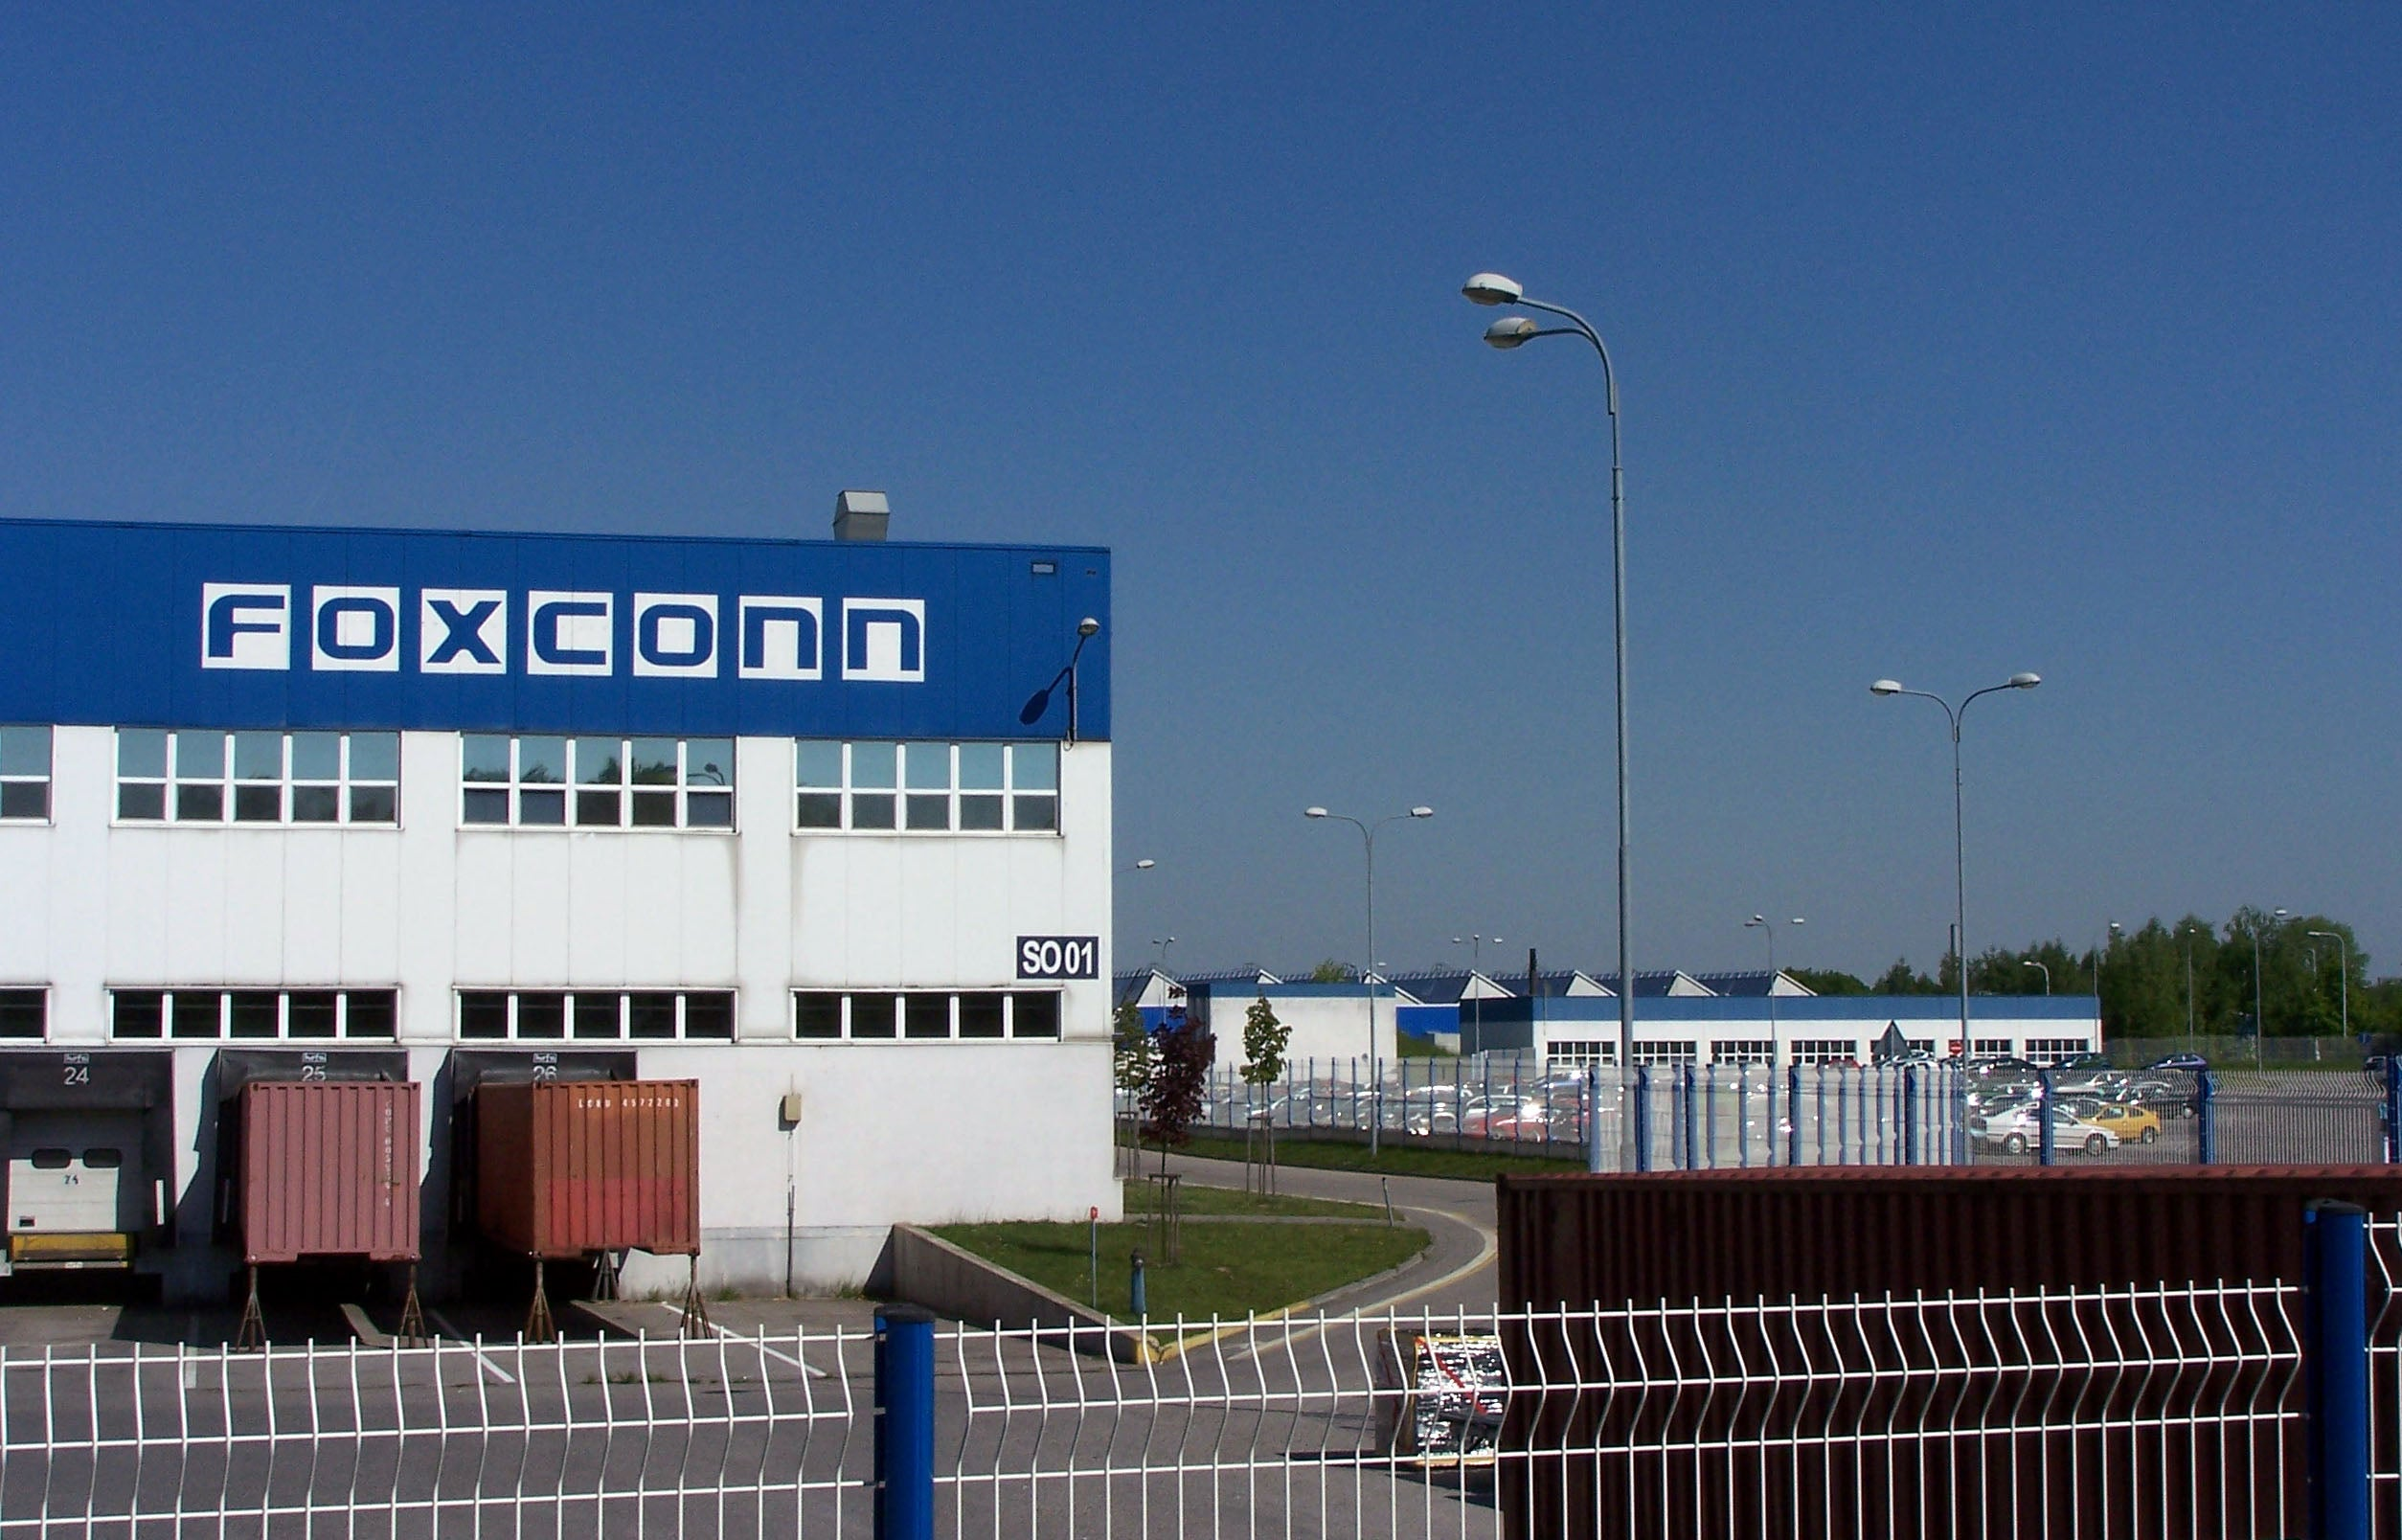 Foxconn Plans to Replace Its Gadget-Building Unhappy Human Workforce With 1 Million Robots